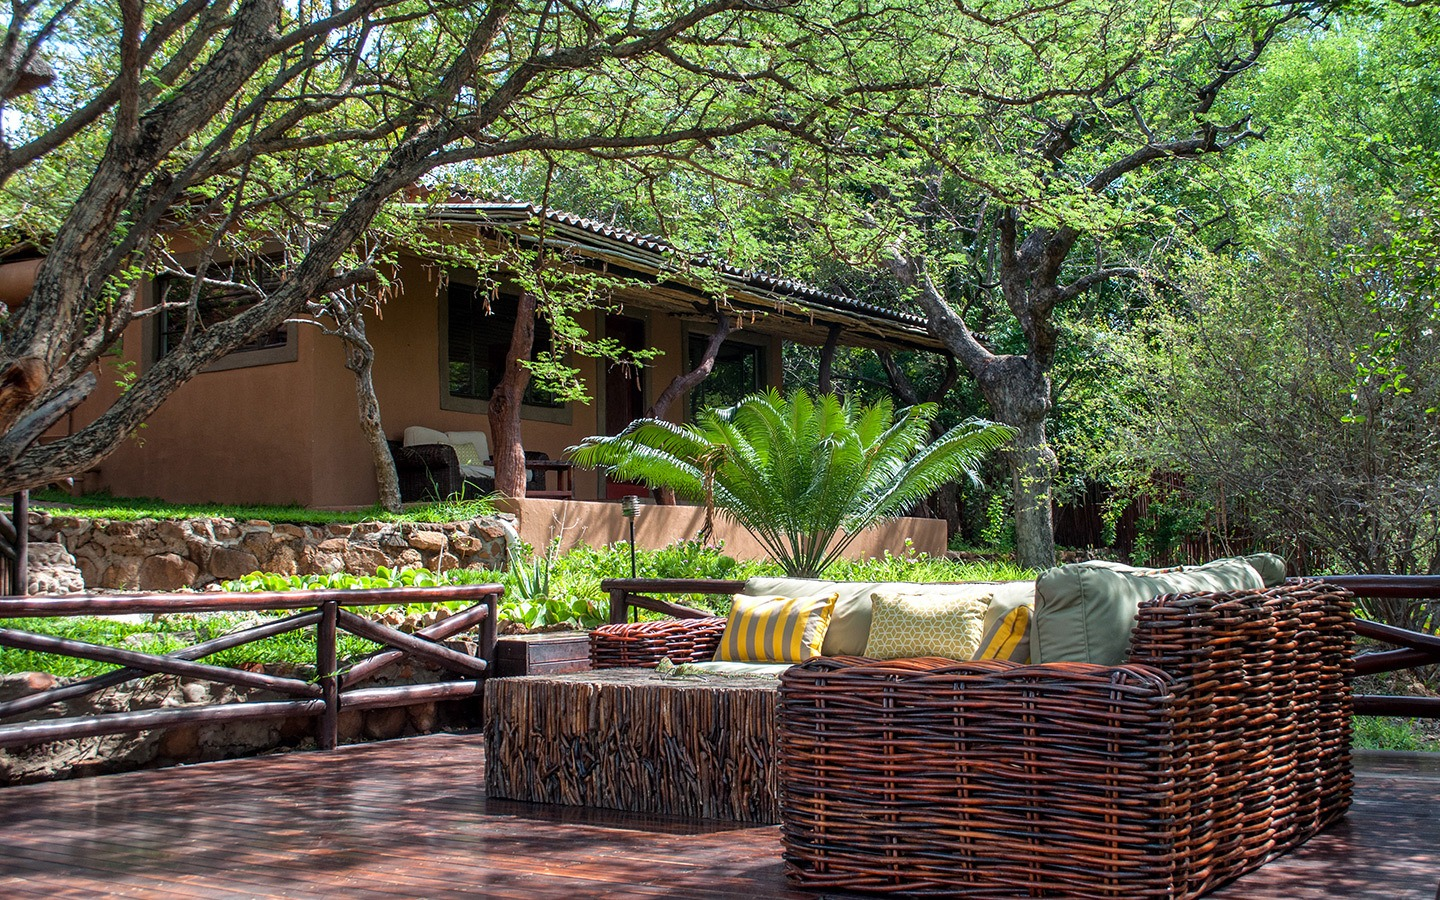 Naledi Game Lodge in the Kruger, South Africa